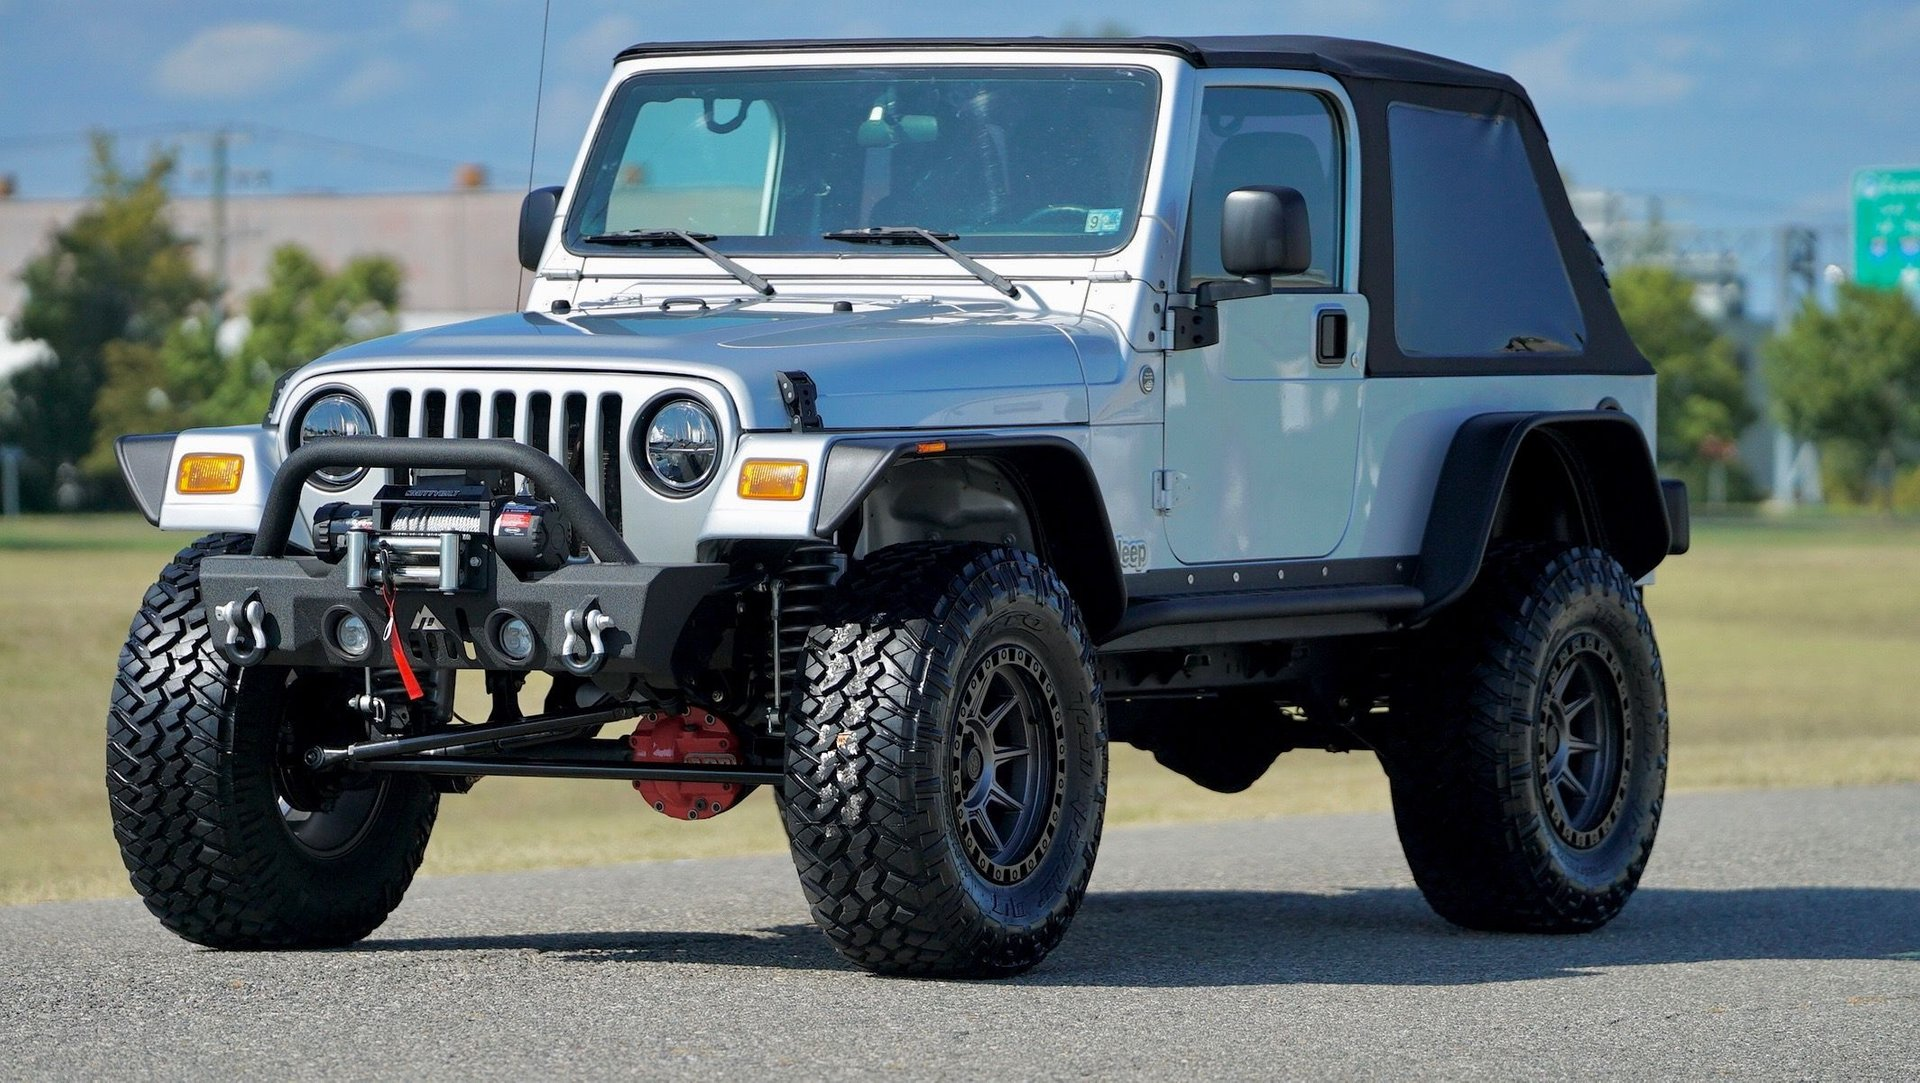 2004 jeep wrangler fully restored built